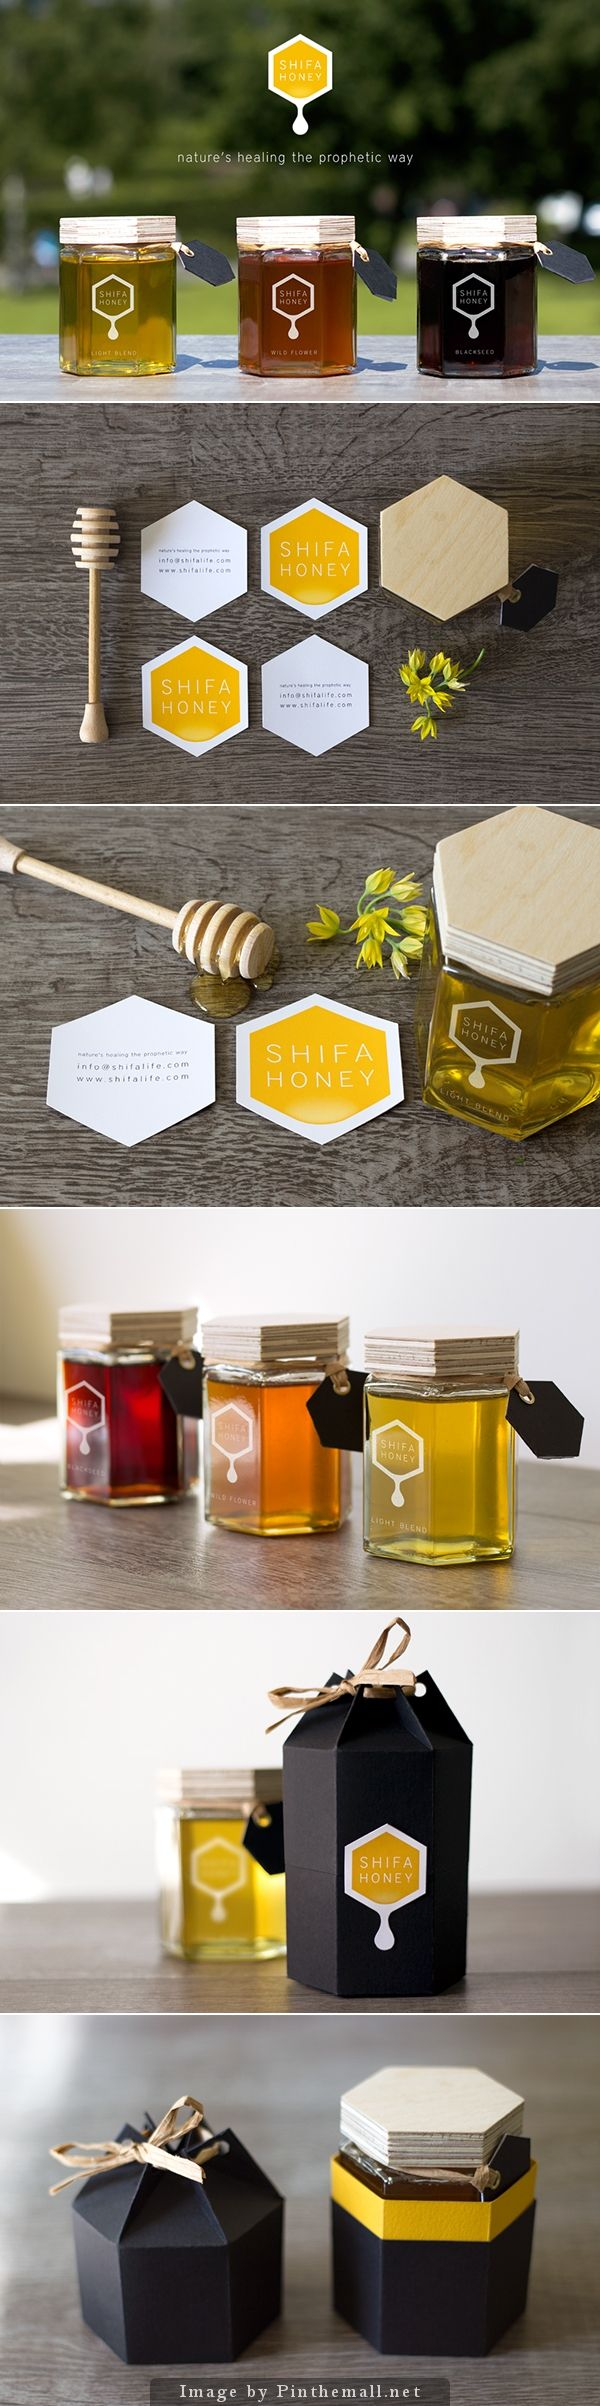 Shifa Honey packaging and logo design. I love the hexagon jars for honey…